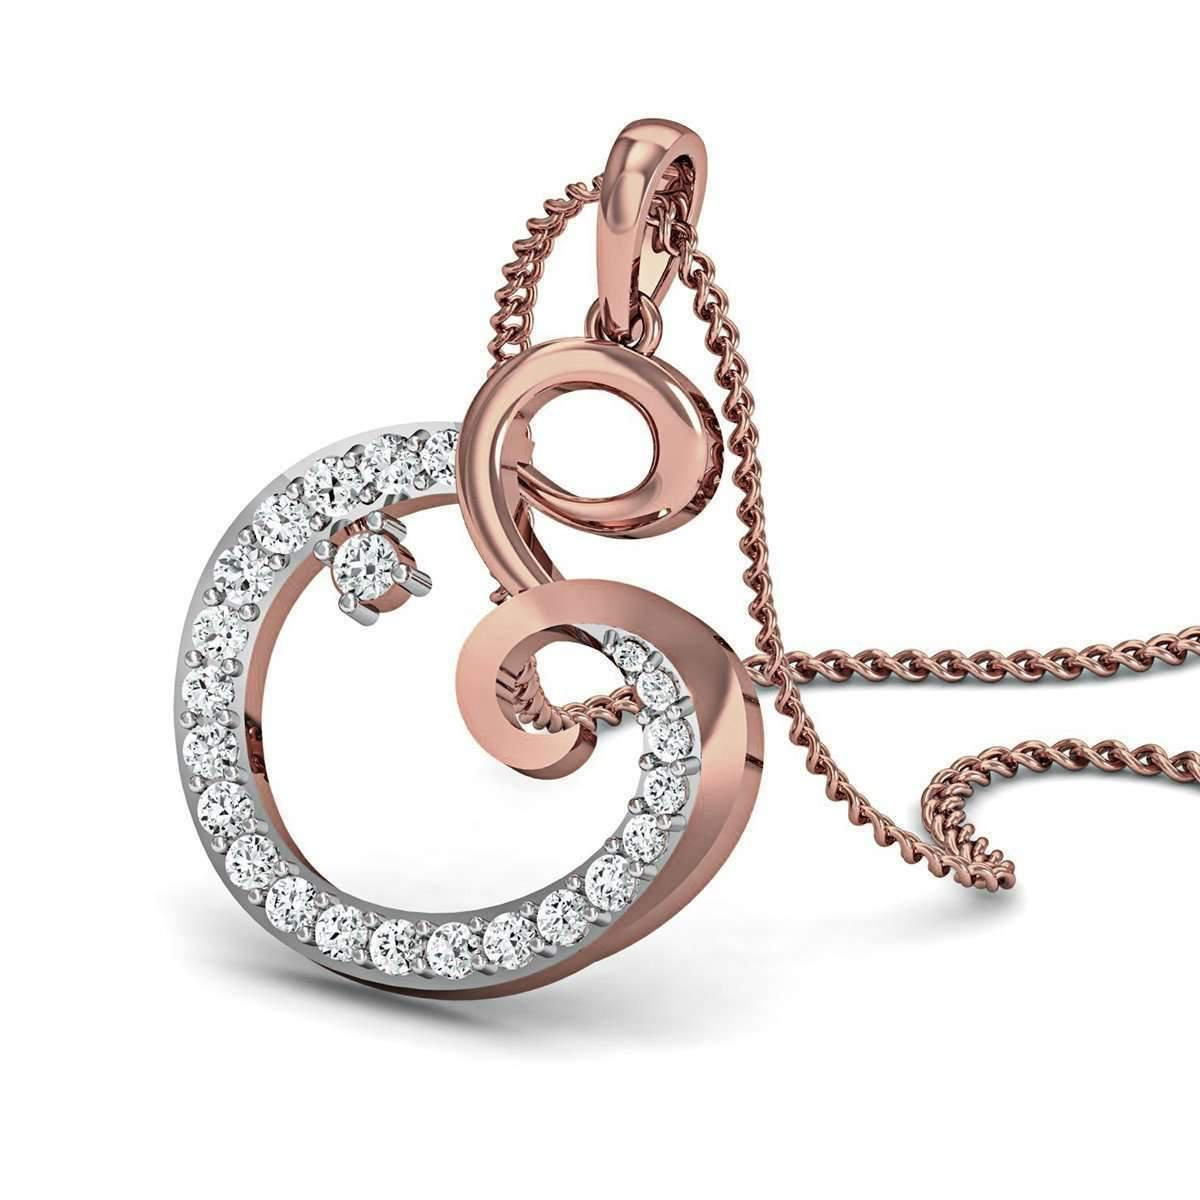 Diamoire Jewels Nature Inspired 14kt Rose Gold Pave Pendant Handset with Premium Diamonds i0HgKSkGG